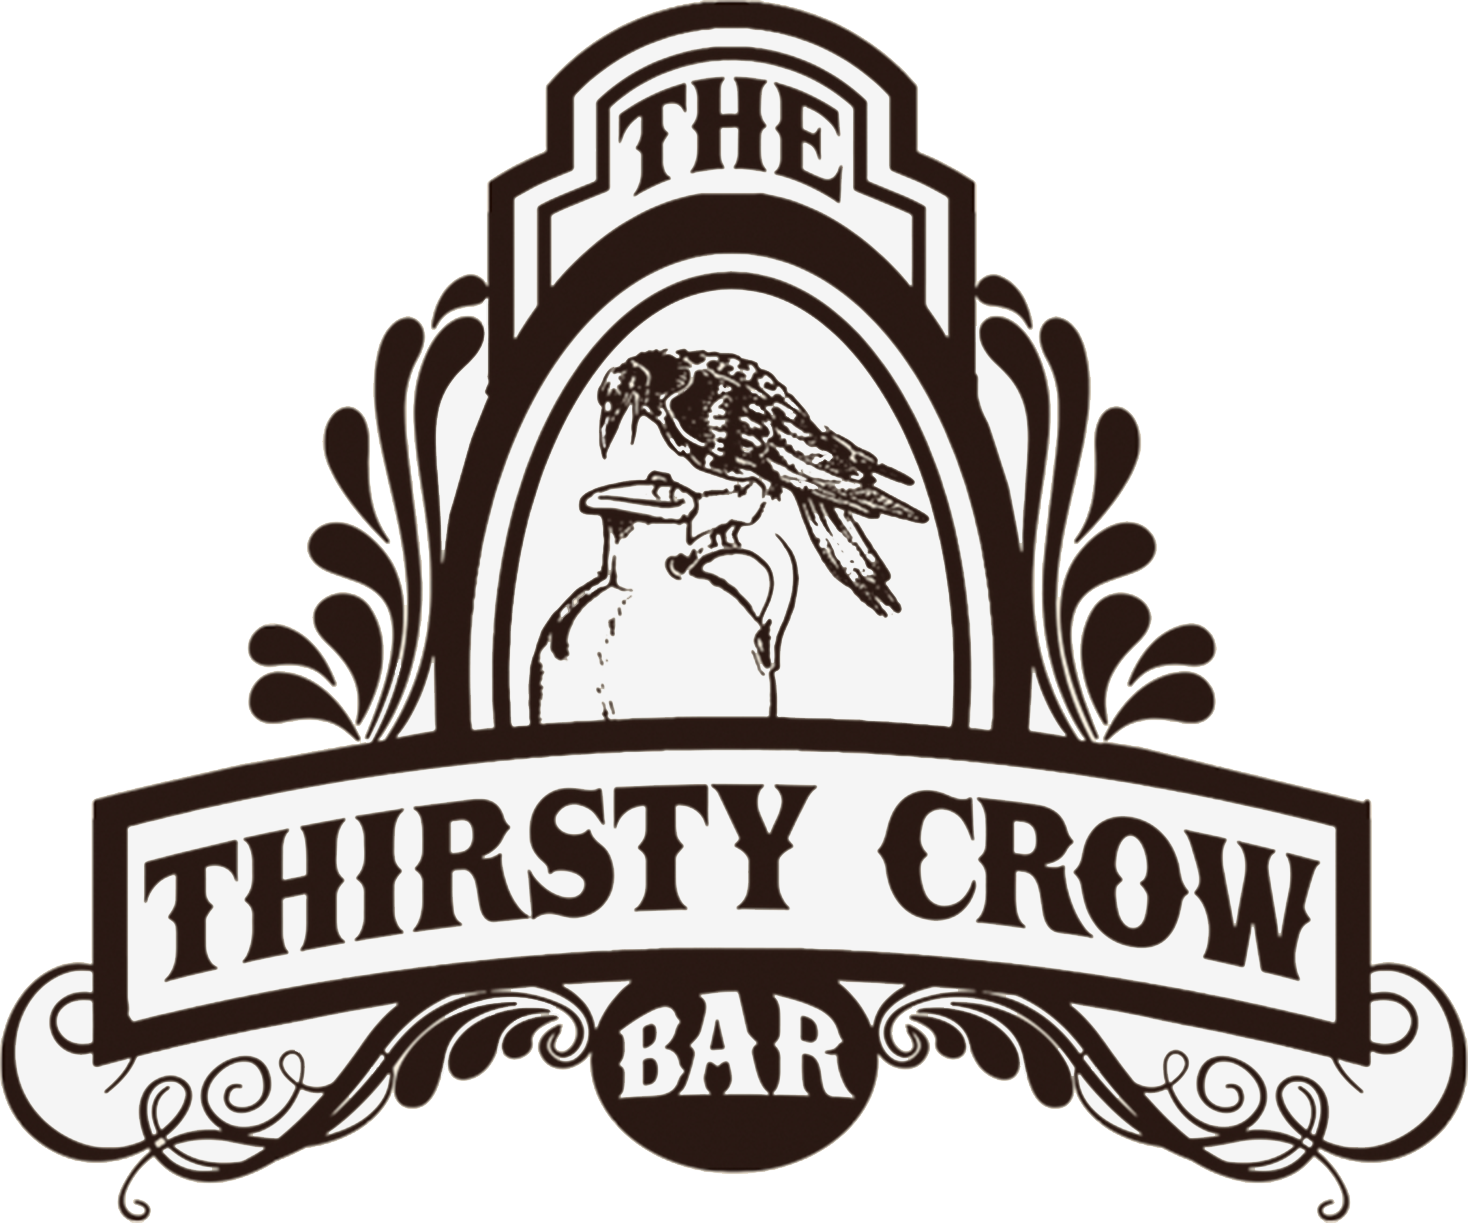 Thirsty Crow